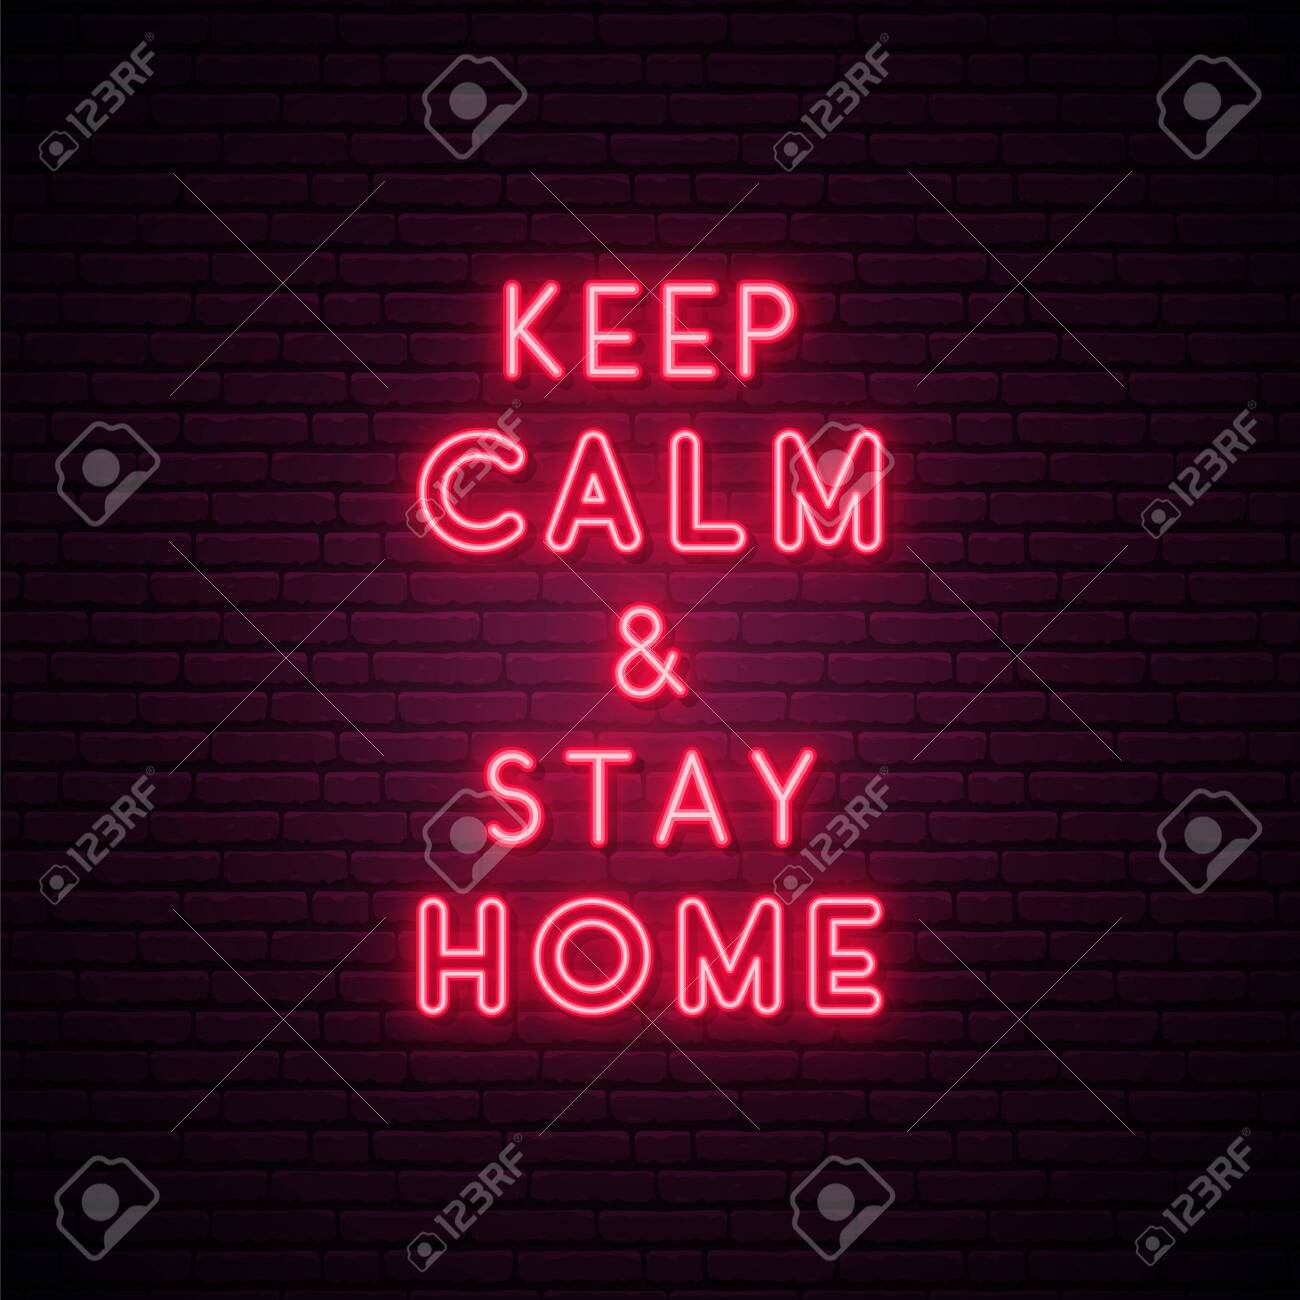 KEEP CALM AND STAY HOME. Coronavirus protect concept. Bright Self-quarantine signboard. Typography vector illustration in neon style. - 144113213